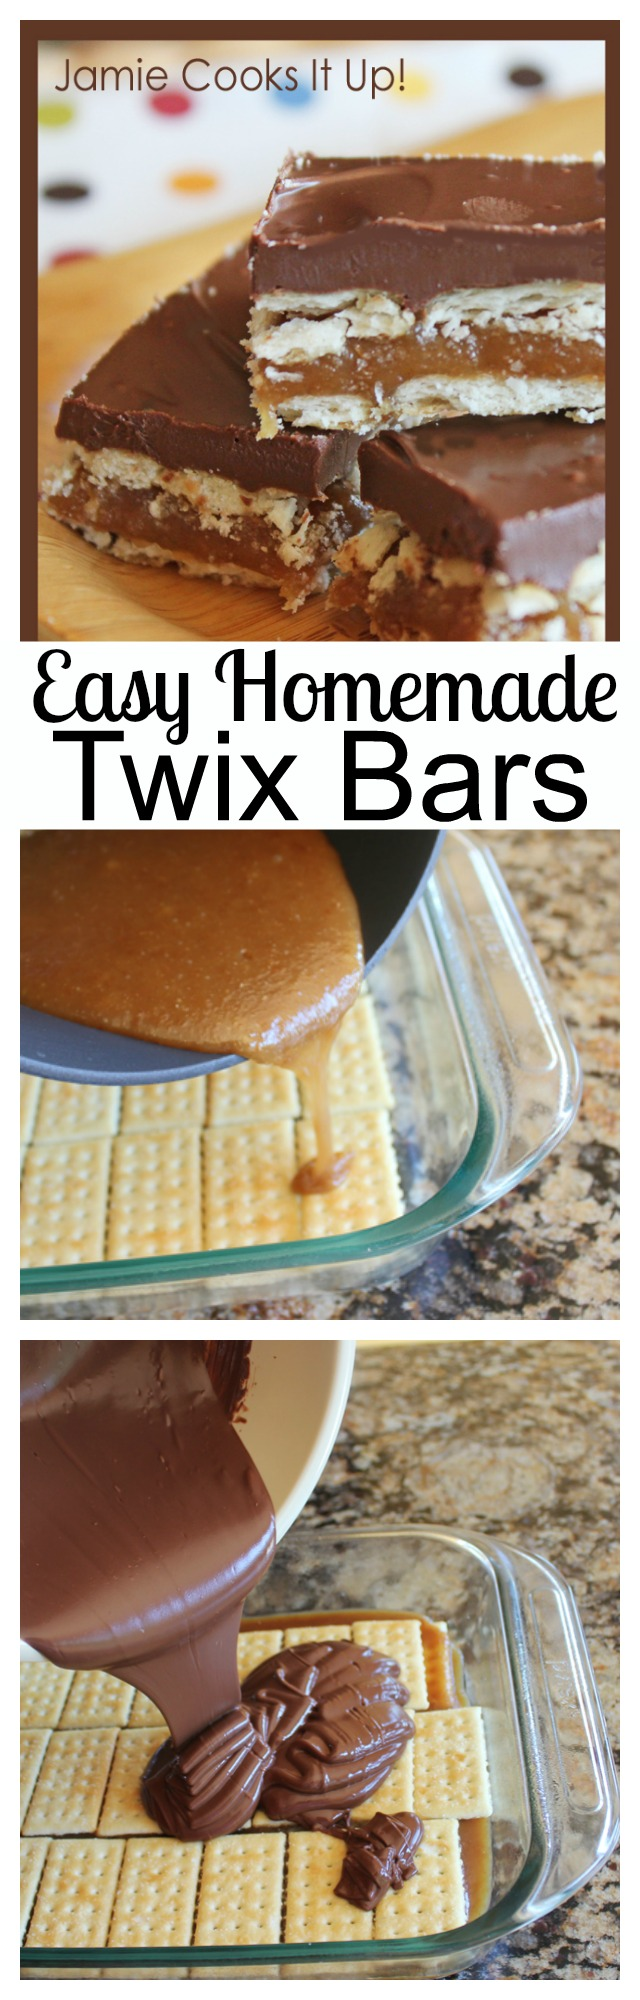 Easy Homemade Twix Bars for Pinterst